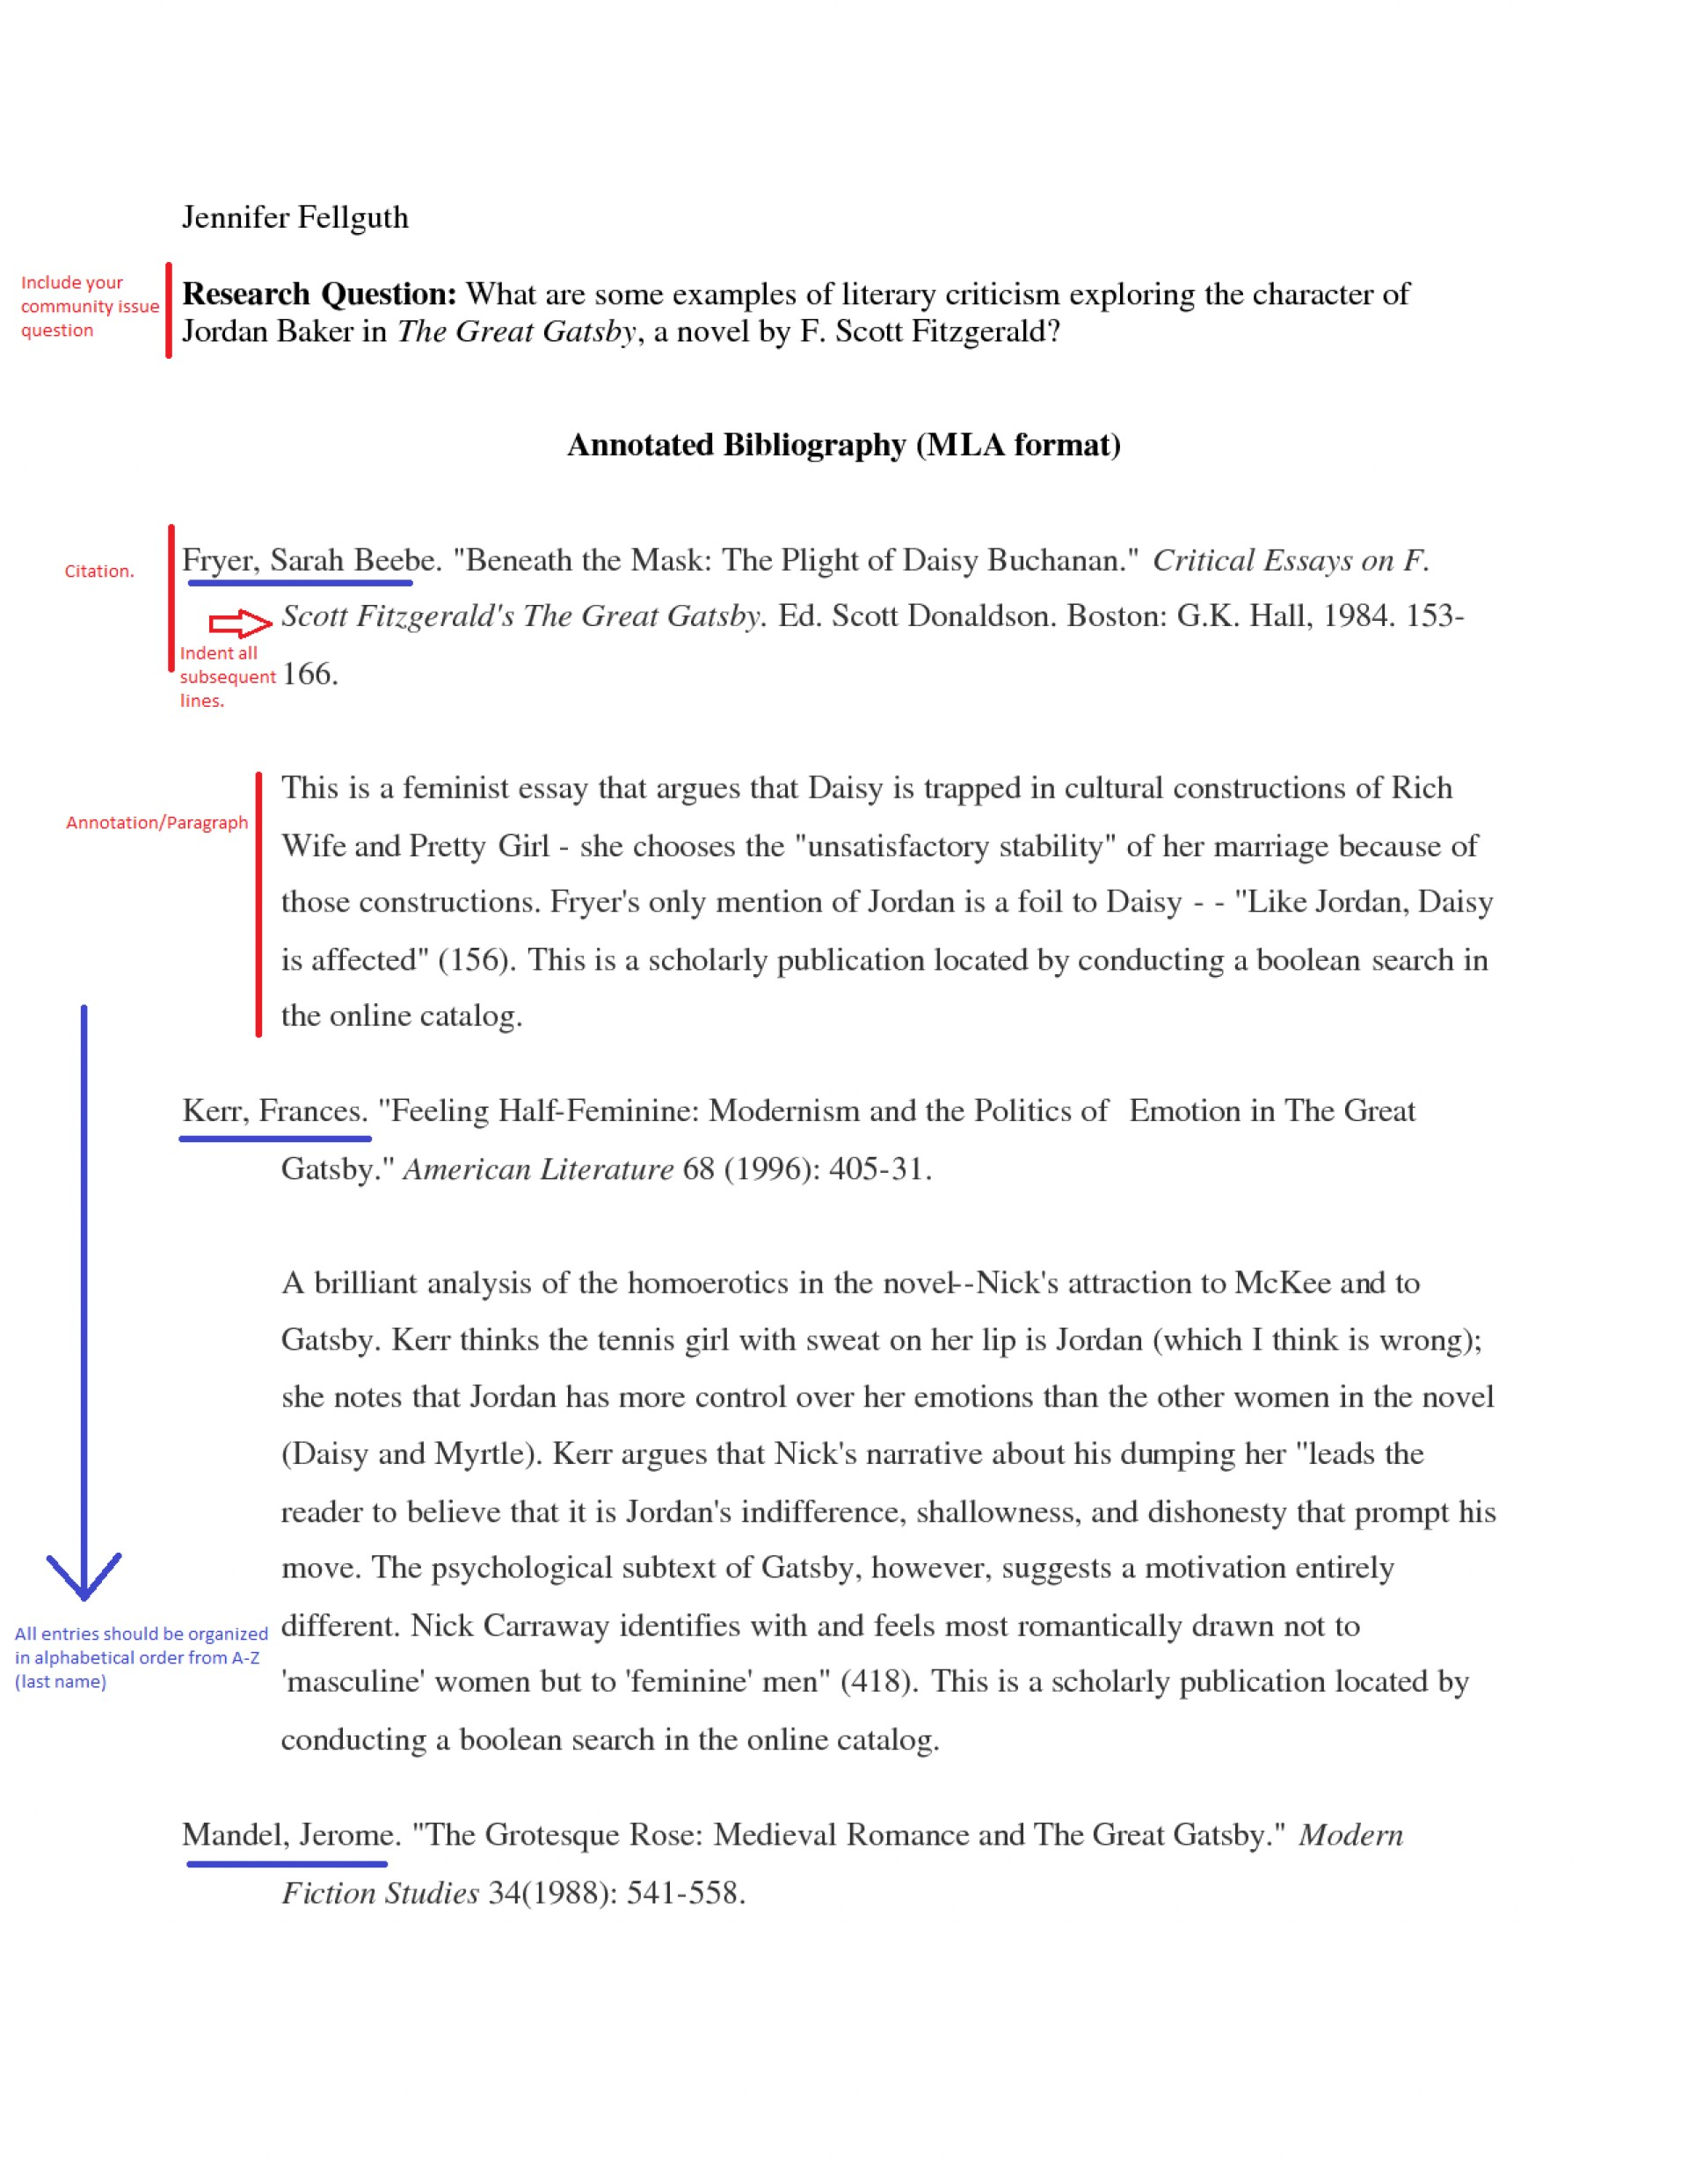 008 Essay Example Mla Citation For How To Cite Images In Format Did You Know Papernotatedbibsampleanno Parenthetical Citing Unusual An A Paper Research Papers 8 1920